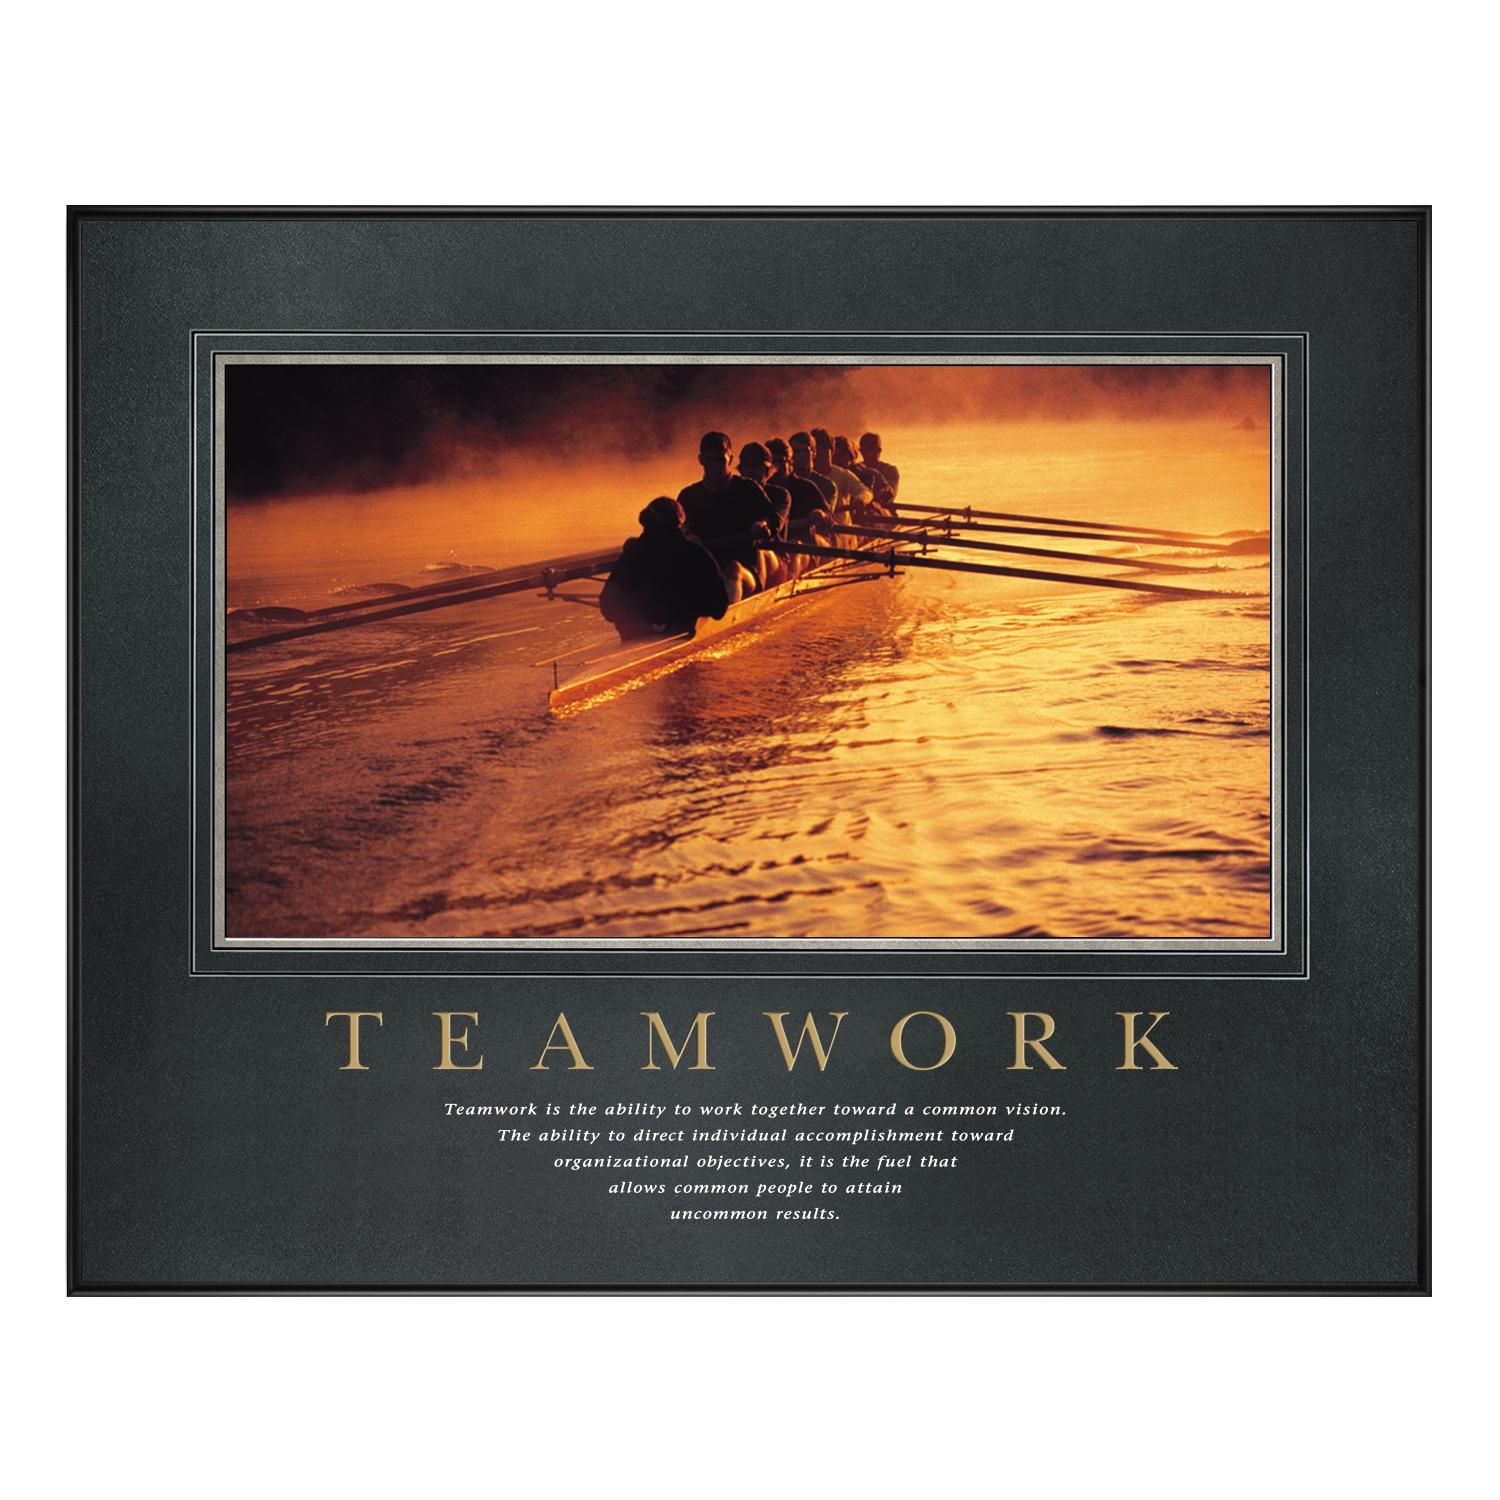 Motivational Quotes For Sports Teams: Teamwork Rowers Motivational Poster